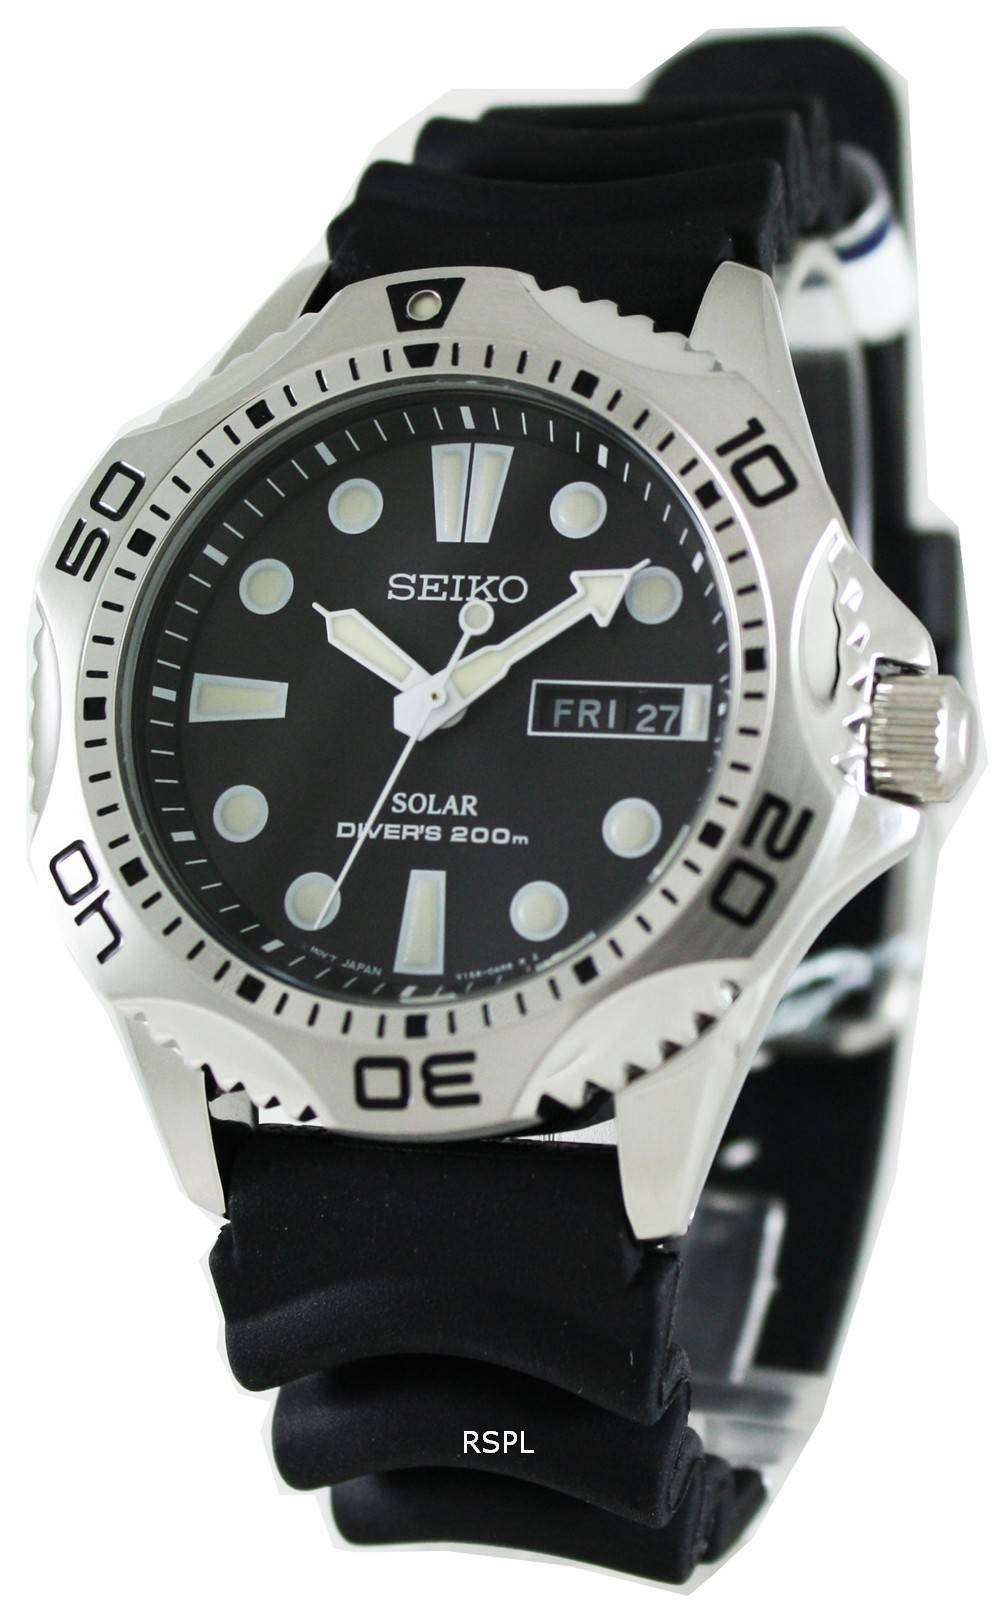 Tag Heuer Uk >> Seiko Solar Scuba Diver Sports SNE107P2 Mens Watch - CityWatches.co.uk